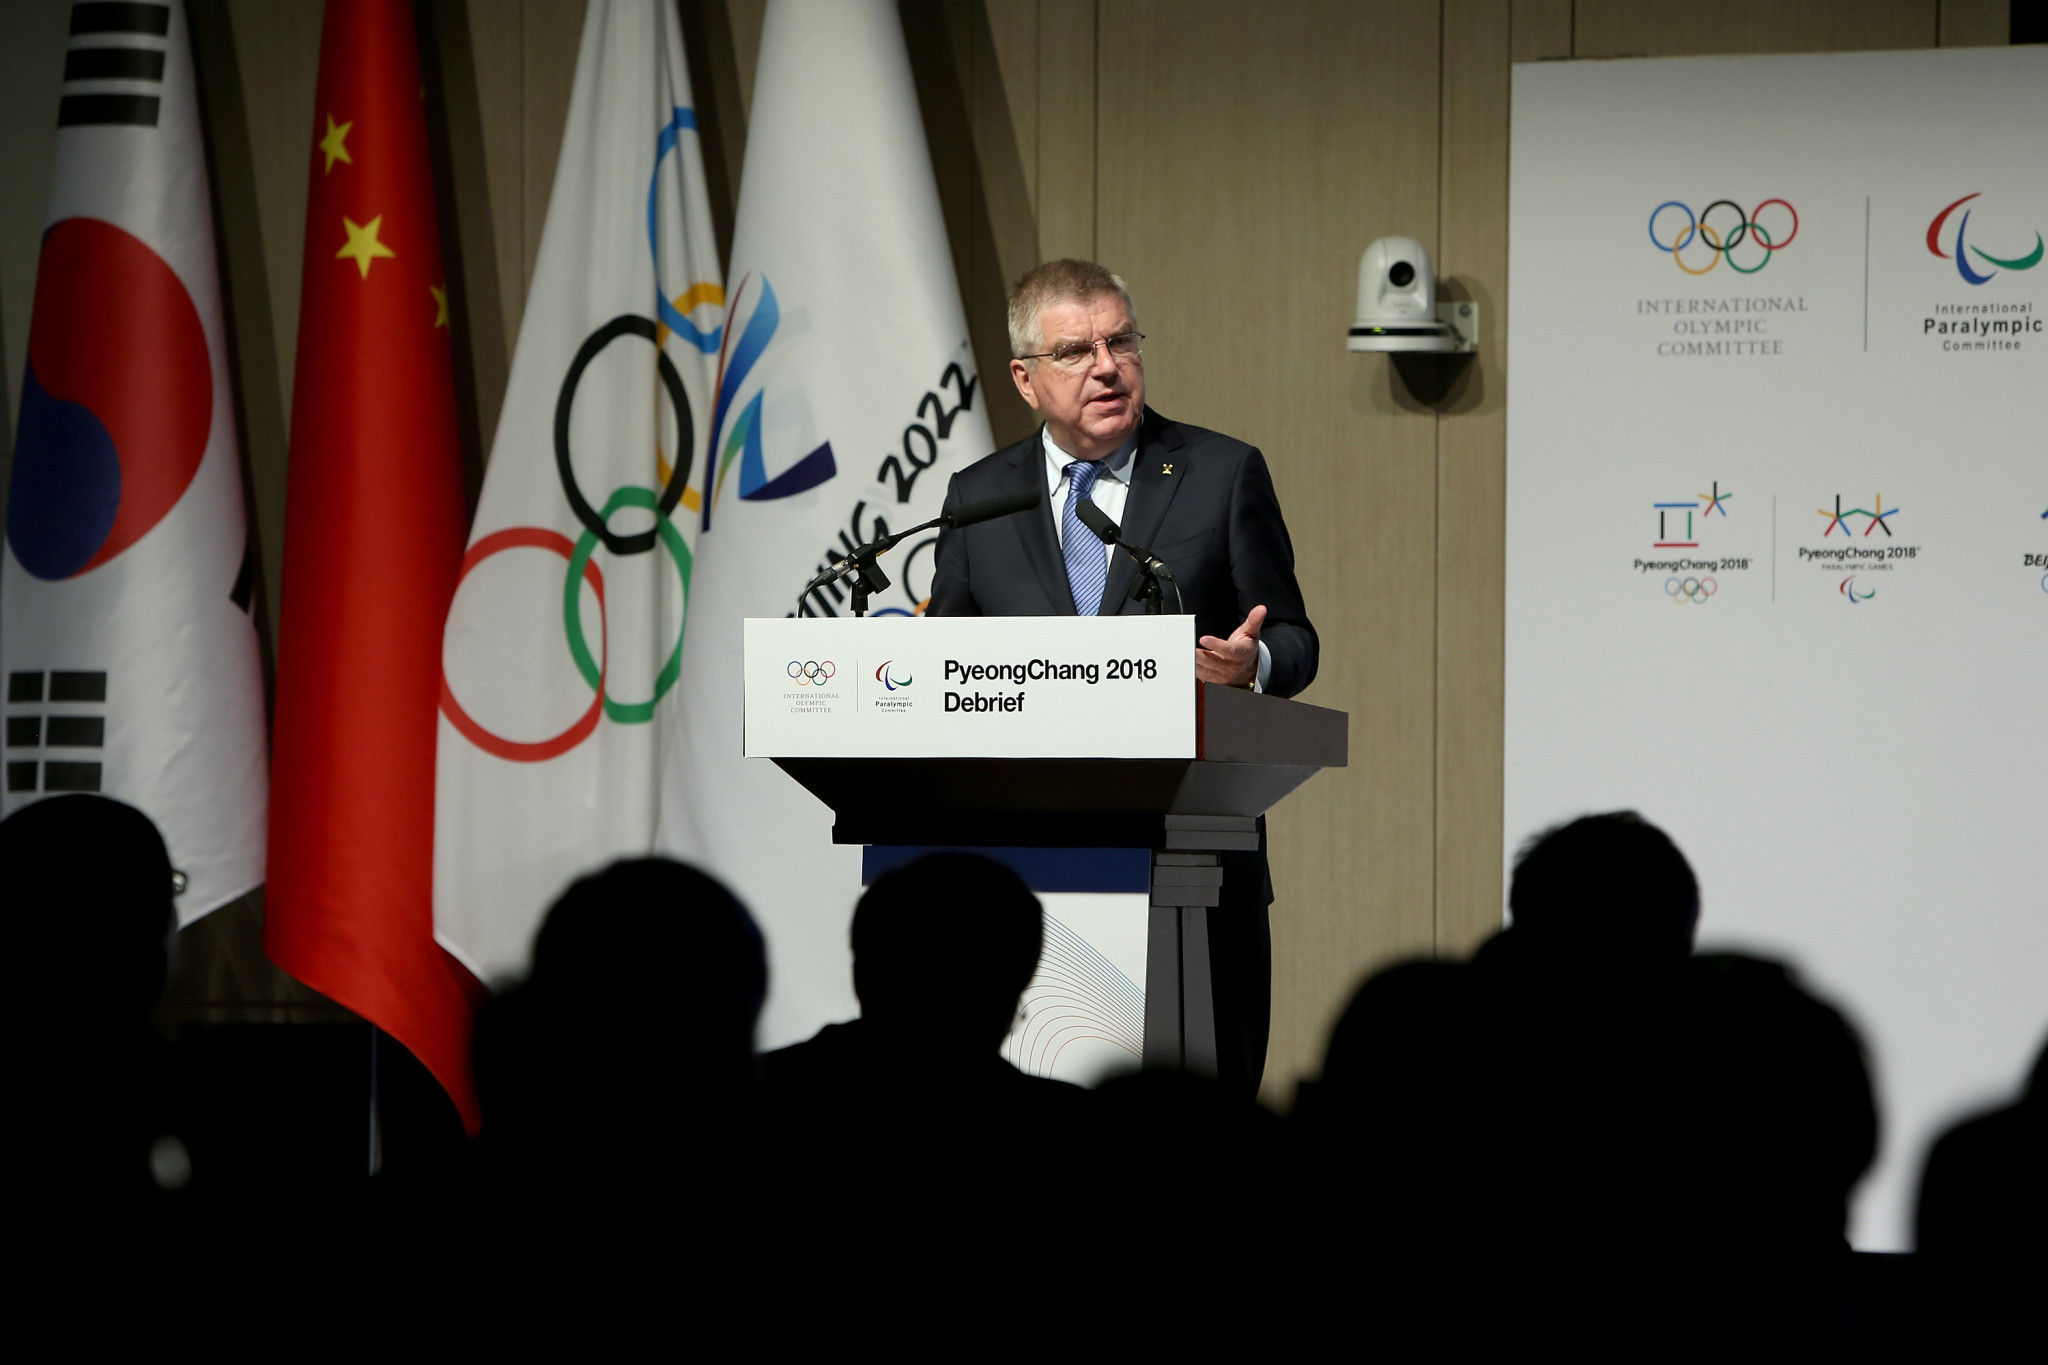 IOC President Thomas Bach was among those present at the Pyeongchang 2018 debrief ©Getty Images